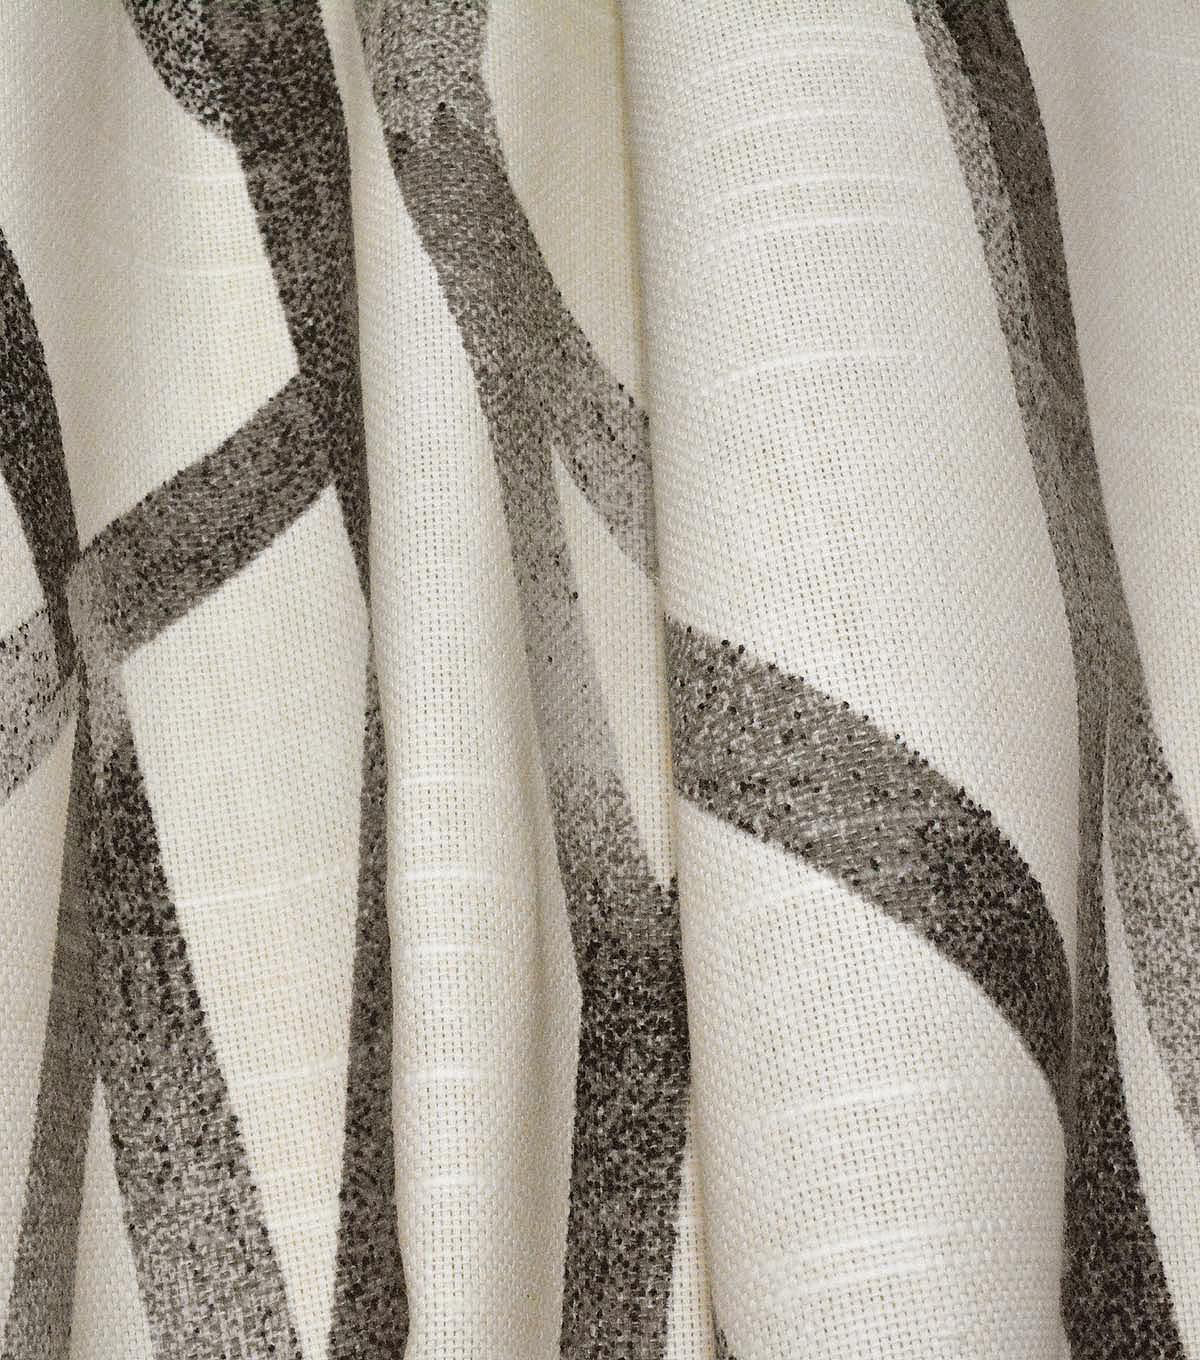 Genevieve Gorder Upholstery Fabric 54\u0027\u0027-Steam Intersections